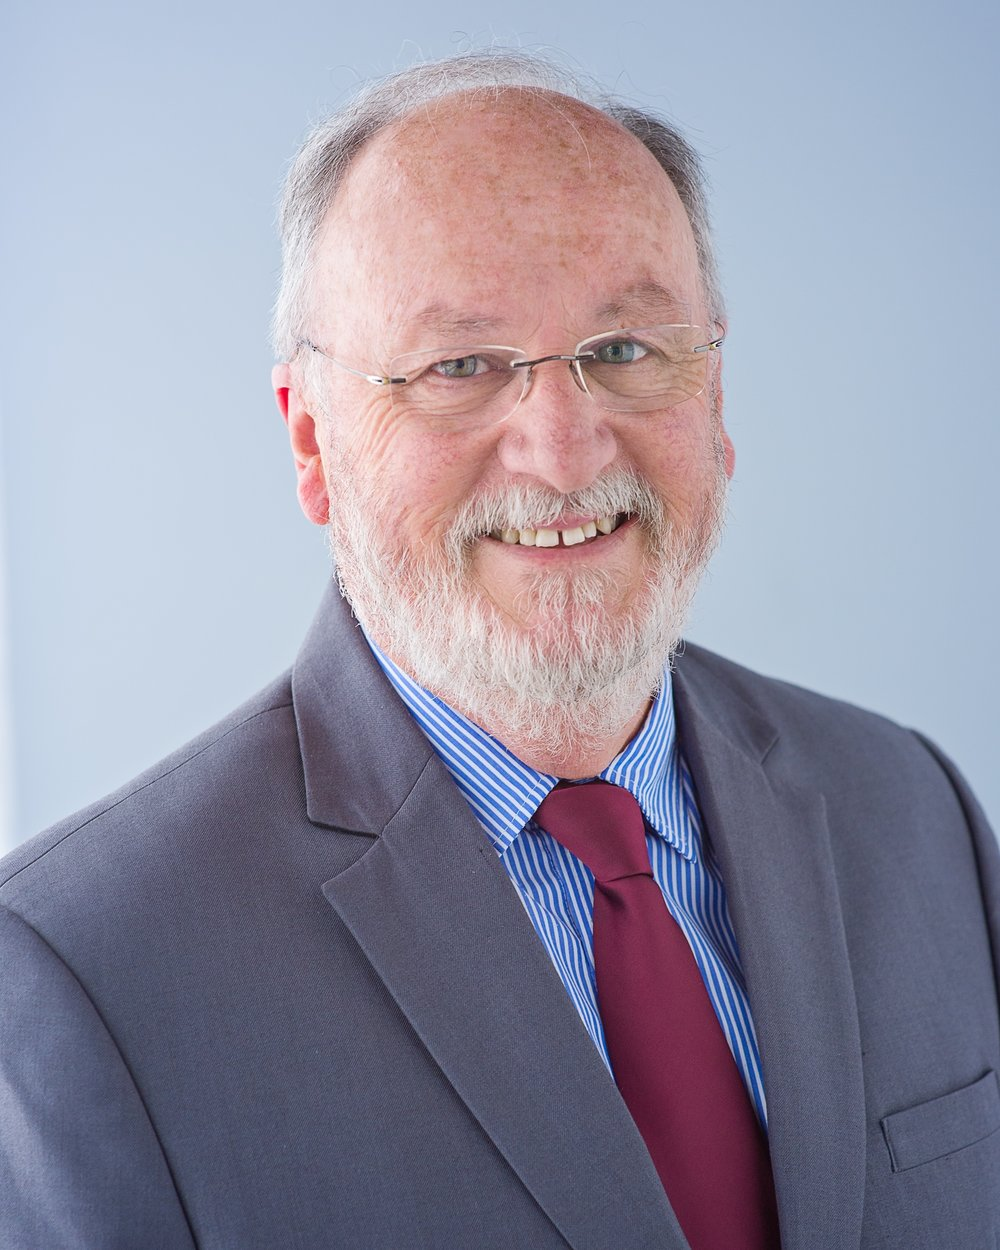 Graeme can assist you to resolve employment law issues expertly, promptly, professionally, cost-effectively and realistically.